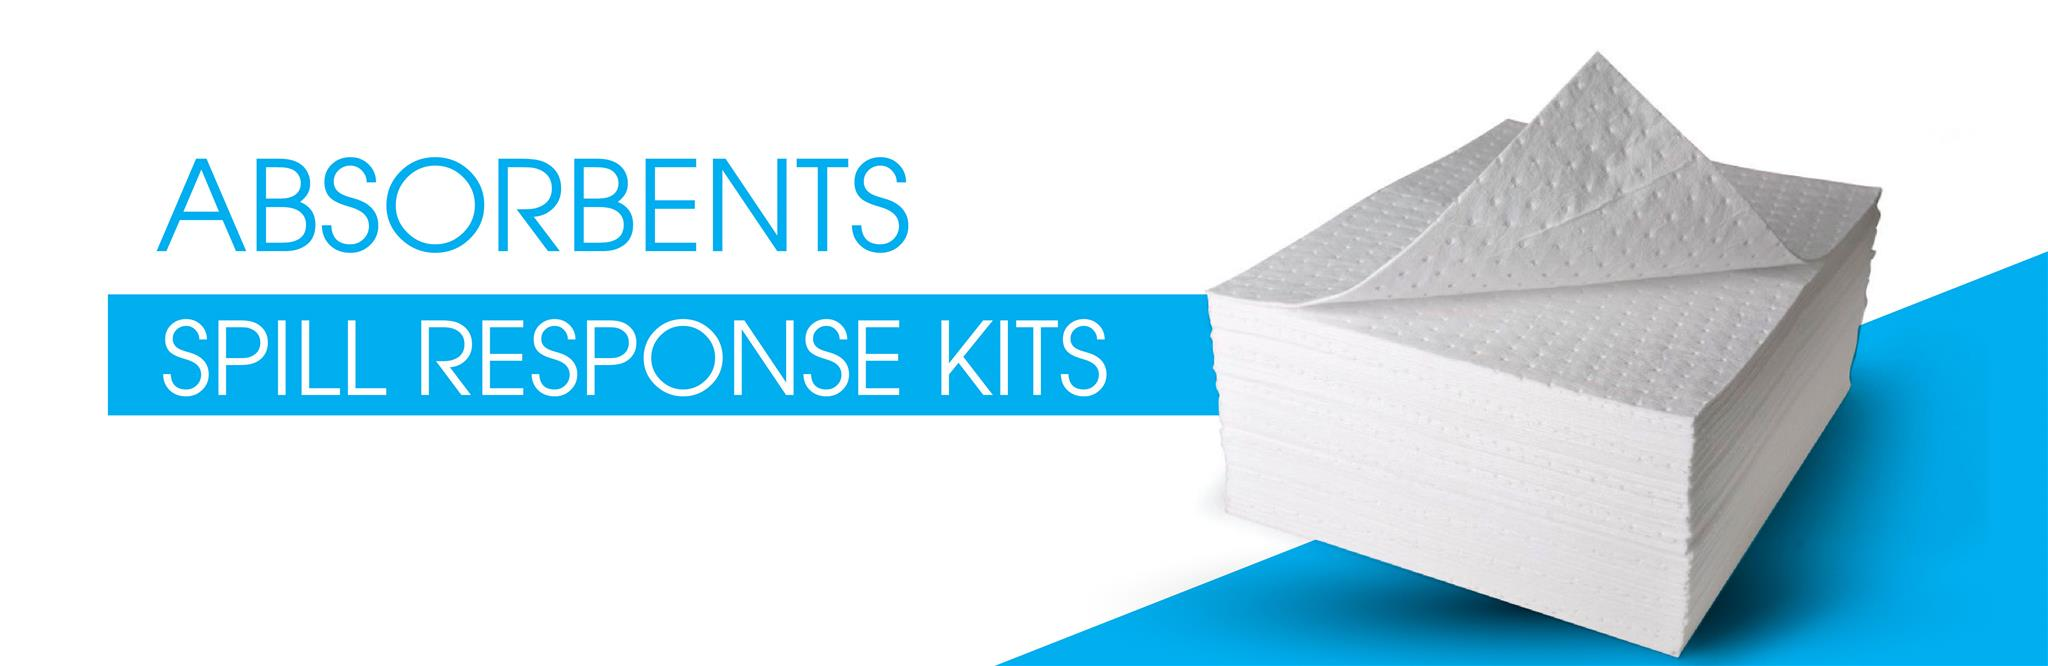 Absorbents & Spill Response Kits